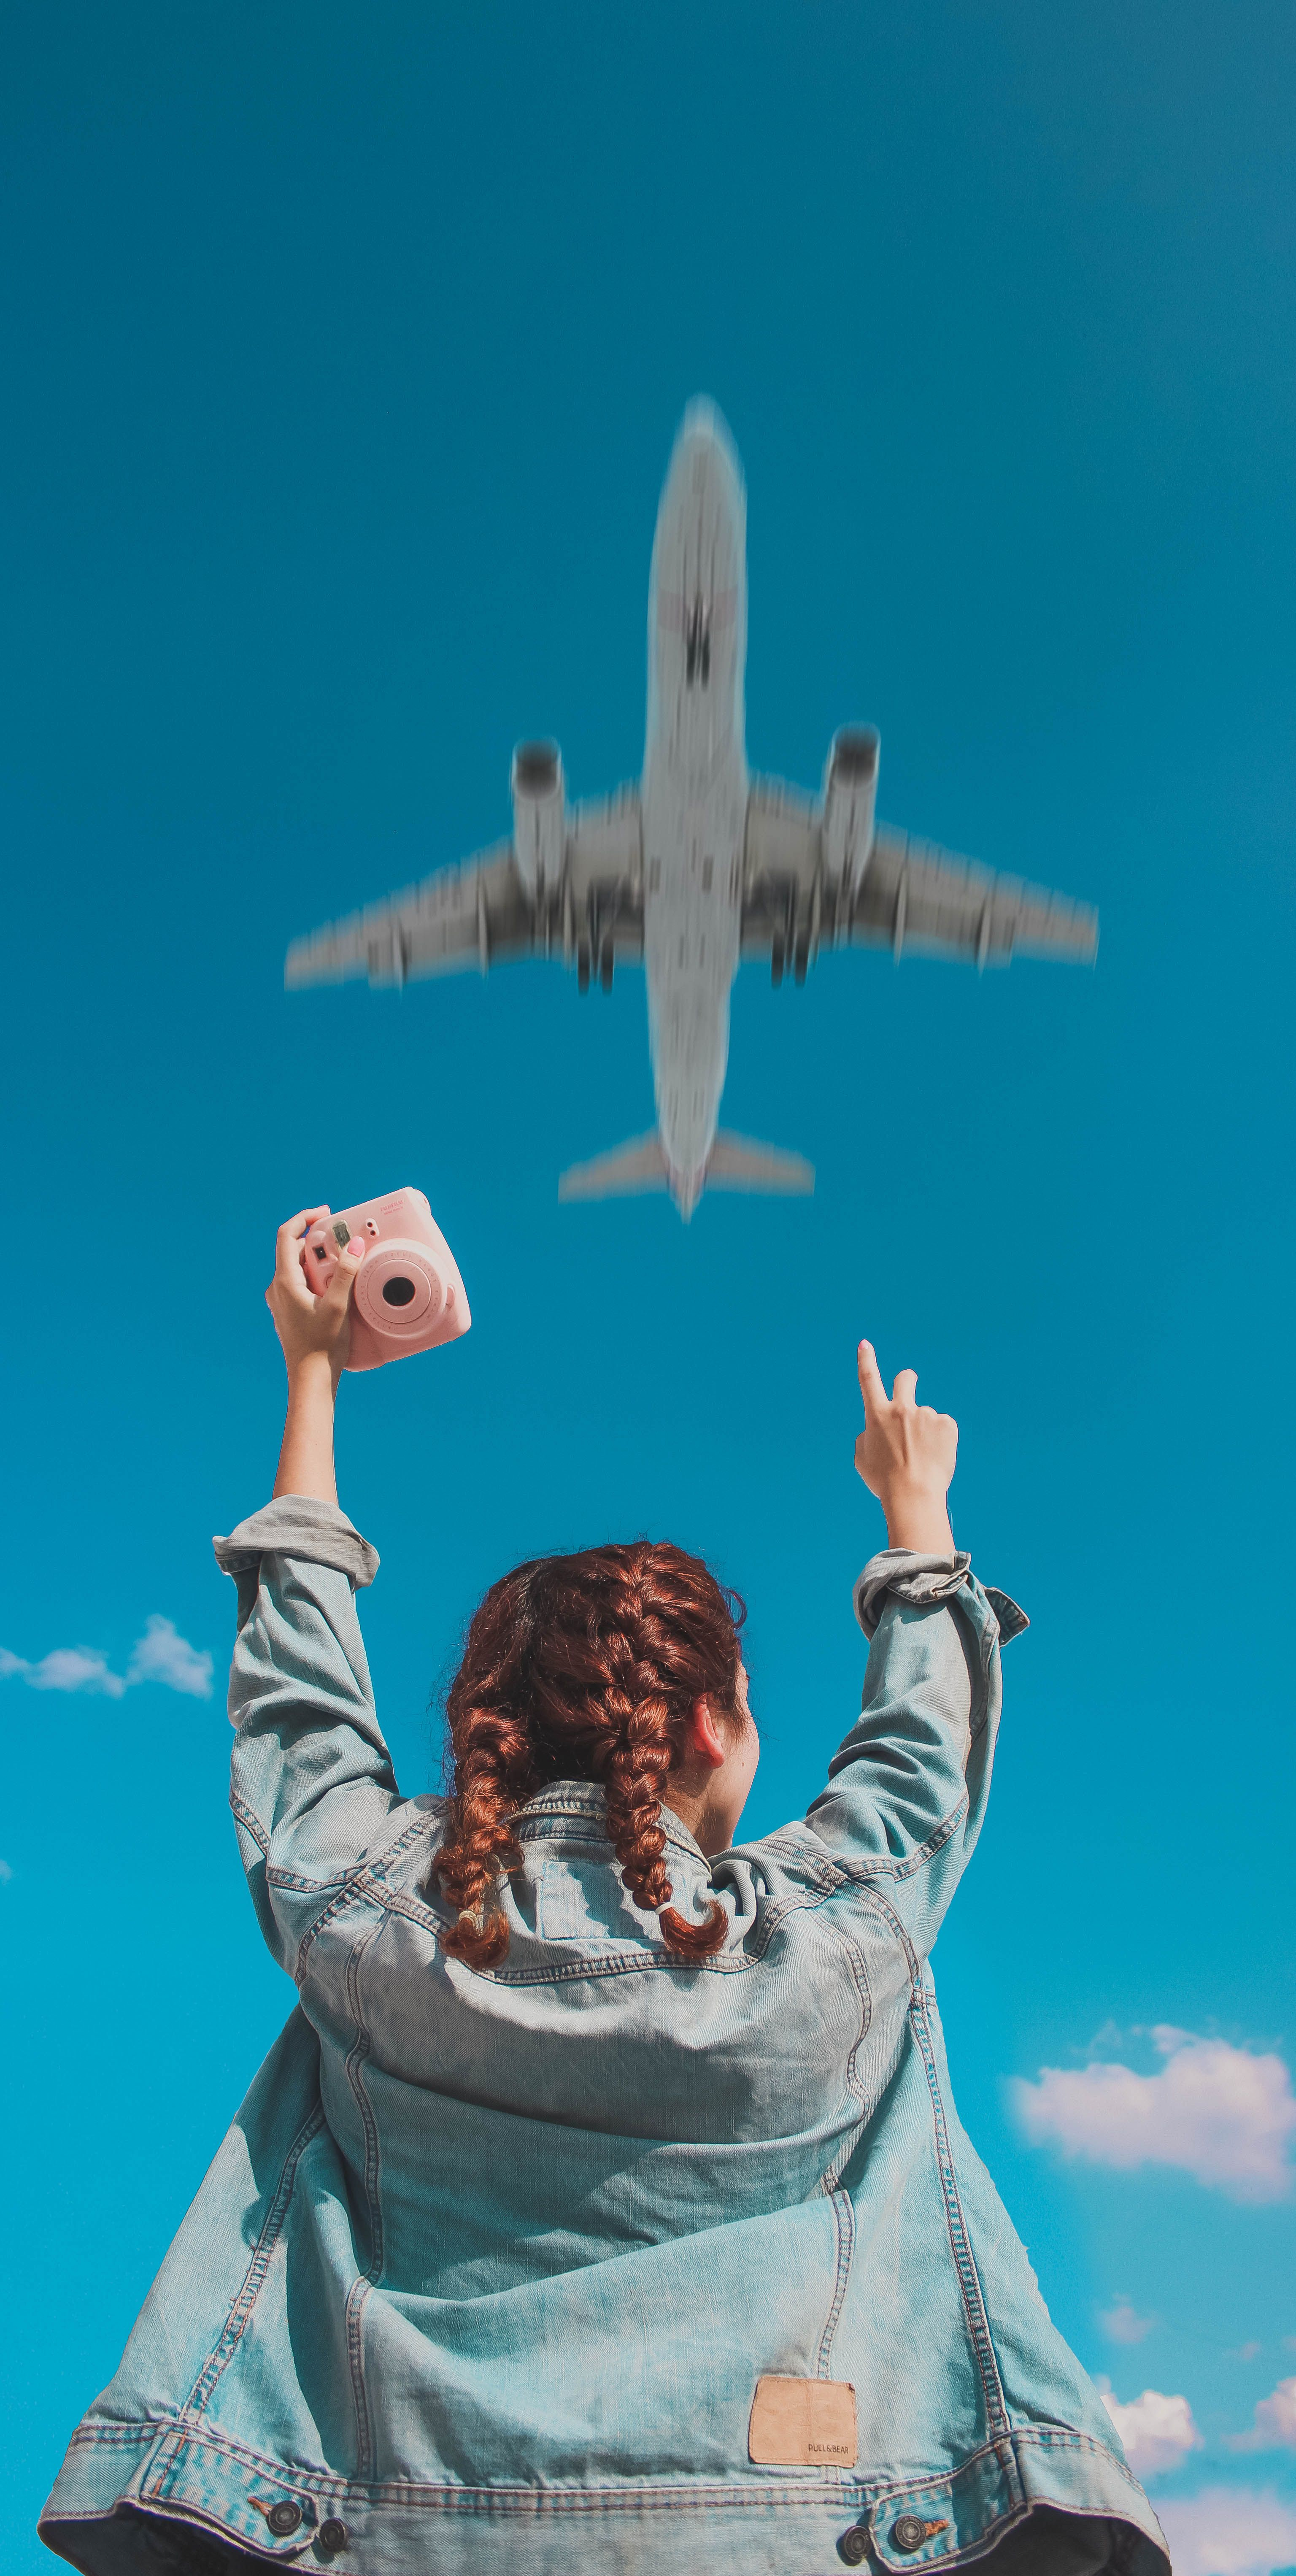 Photo Of Maaaaakyy On Instagram Image Of A Girl Looking Up To The Sky As A Plane Flies By Travel Aesthetic Adventu Tumblr Photography Artsy Pictures Photo